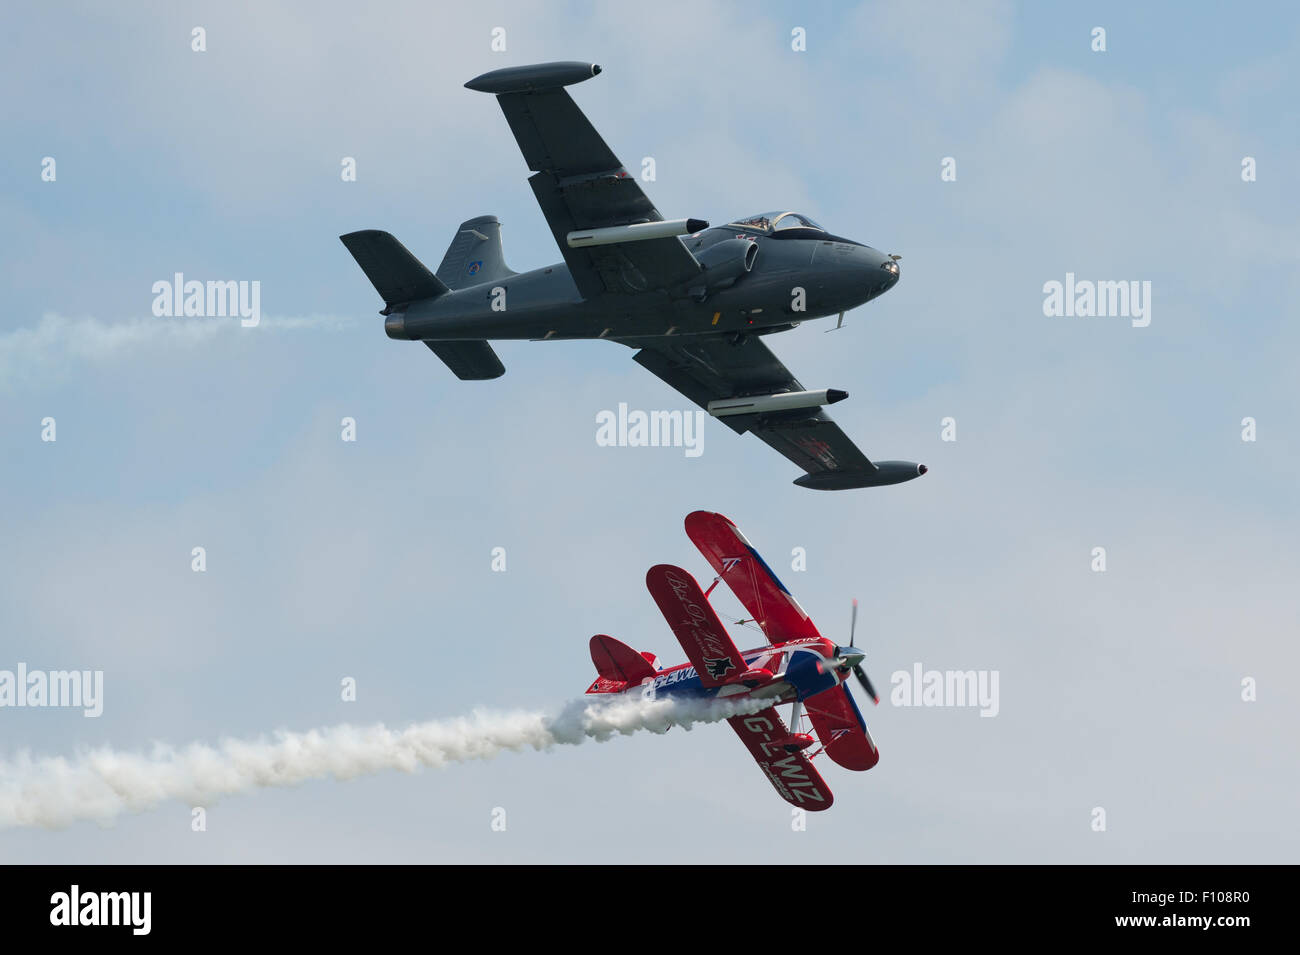 BAC Strikemaster jet trainer and Rich Goodwin's Muscle Pitts Biplane fly together at the Dawlish Air Show 2015. - Stock Image